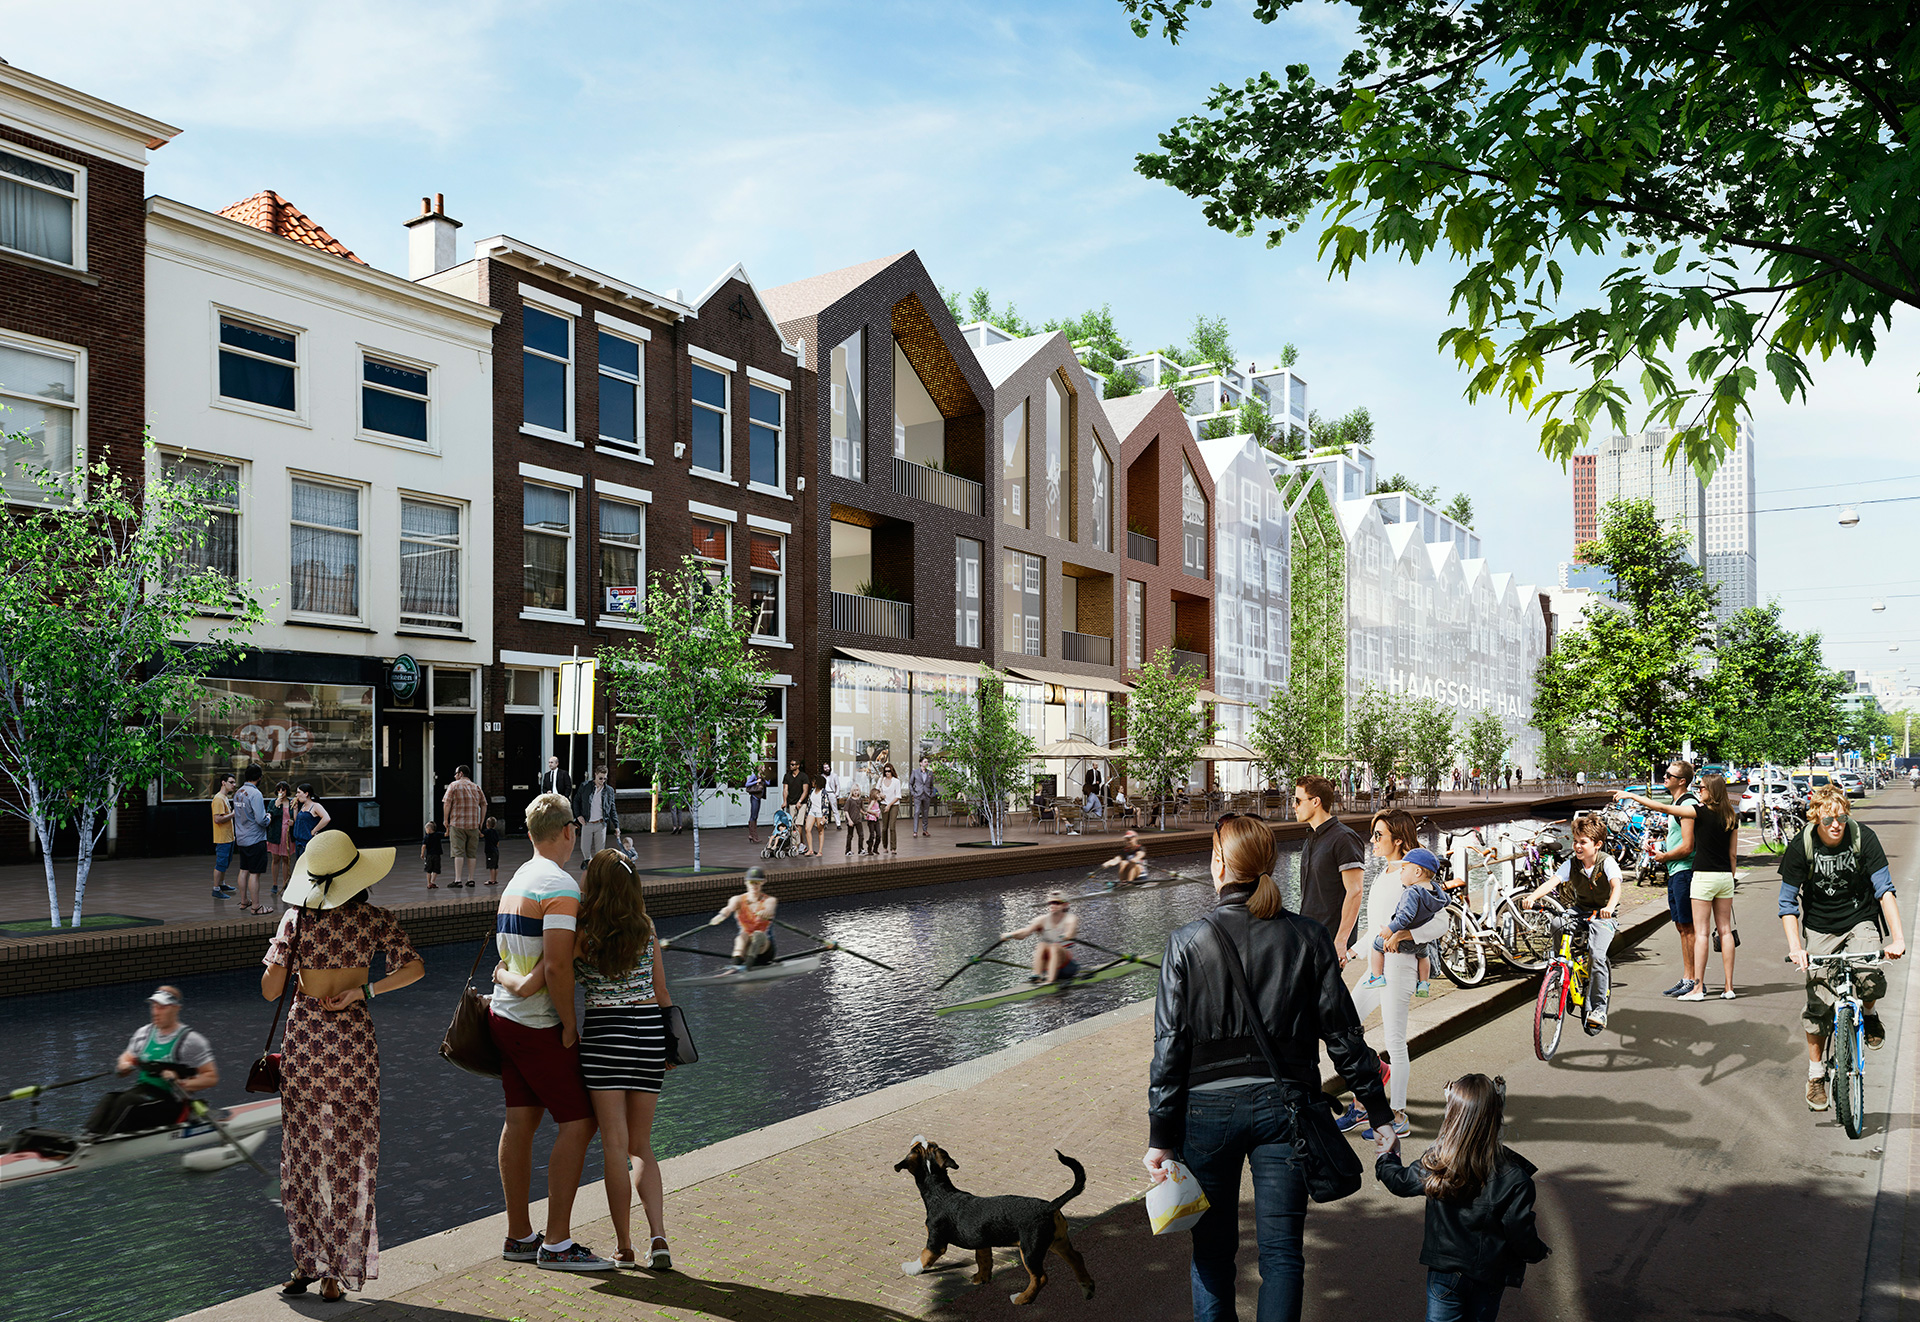 Amsterdamseveerkade - Proposed | MVRDV| Hague Canals| STIR